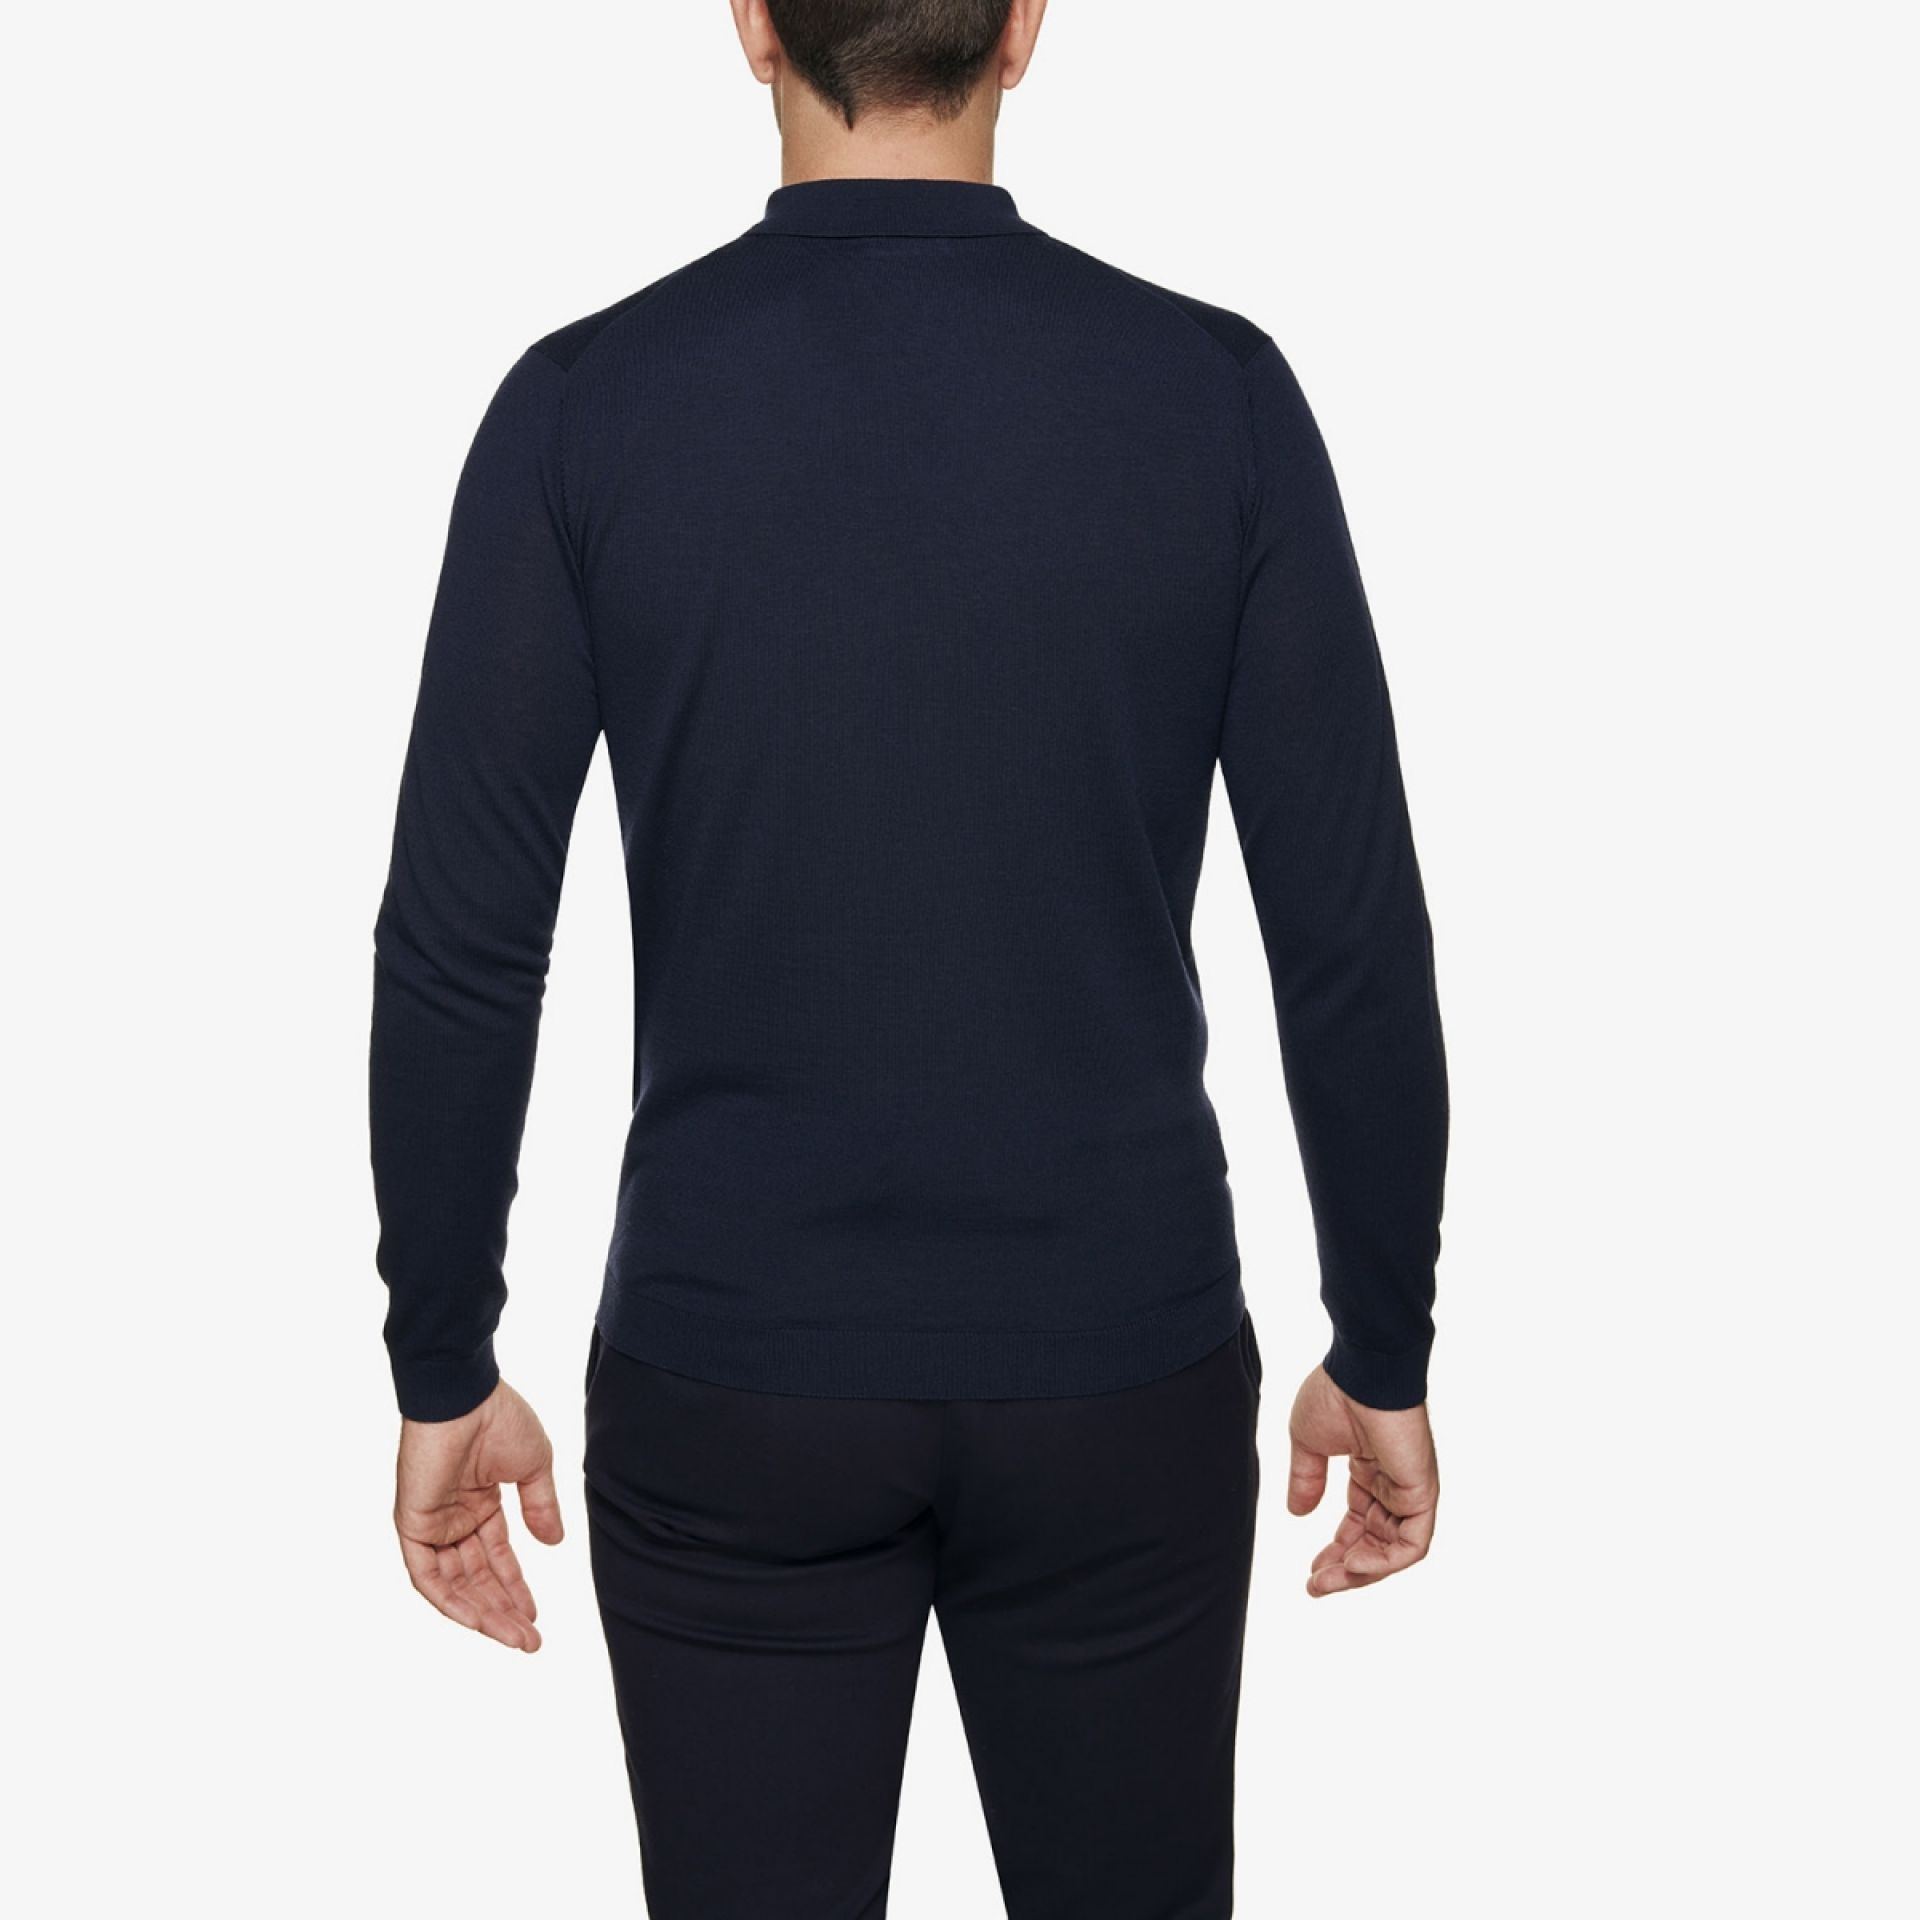 Gold polo donkerblauw